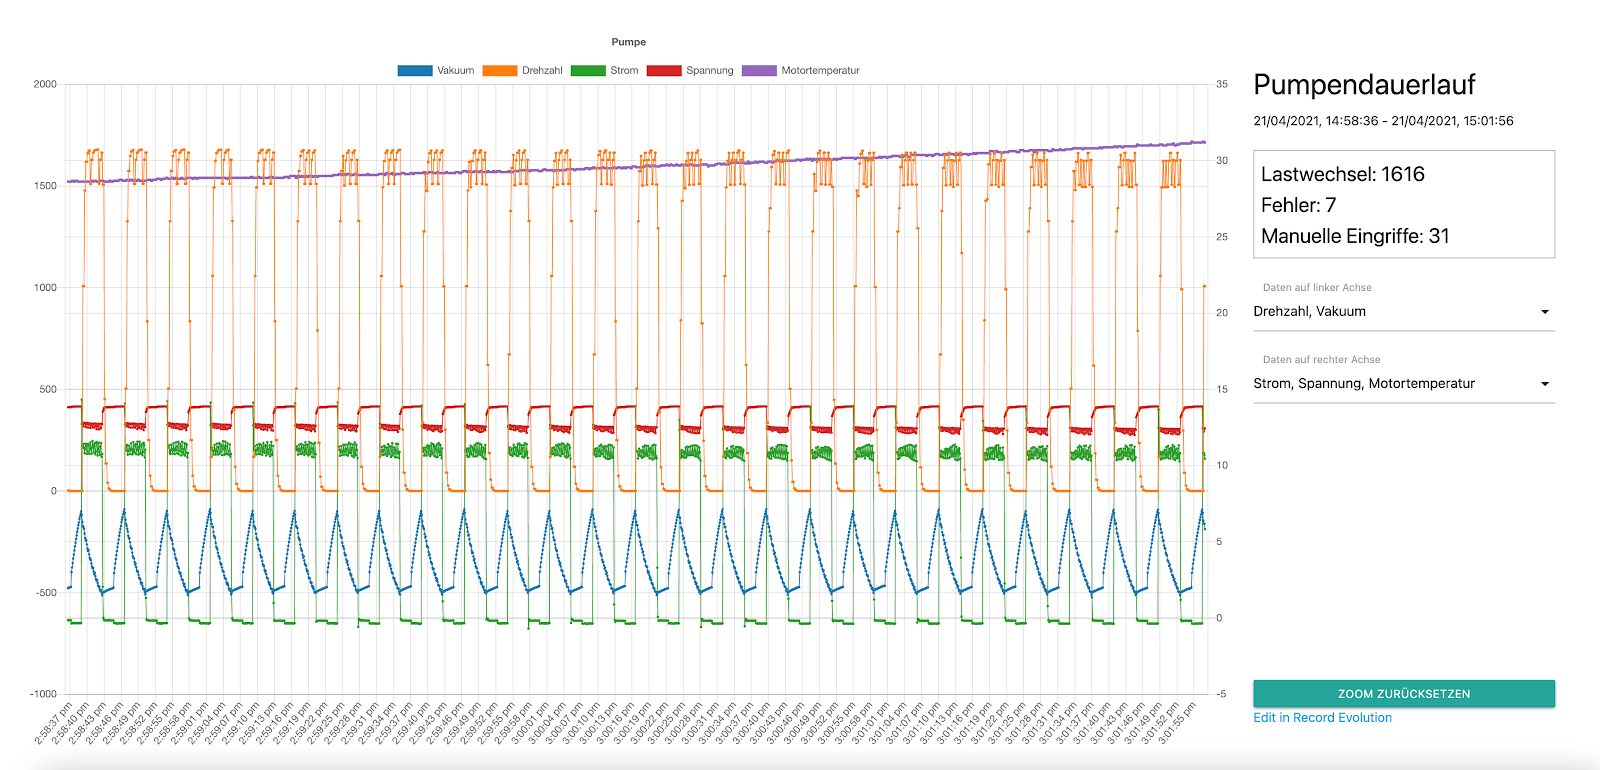 visualizing the vacuum pump data with a custom infographic